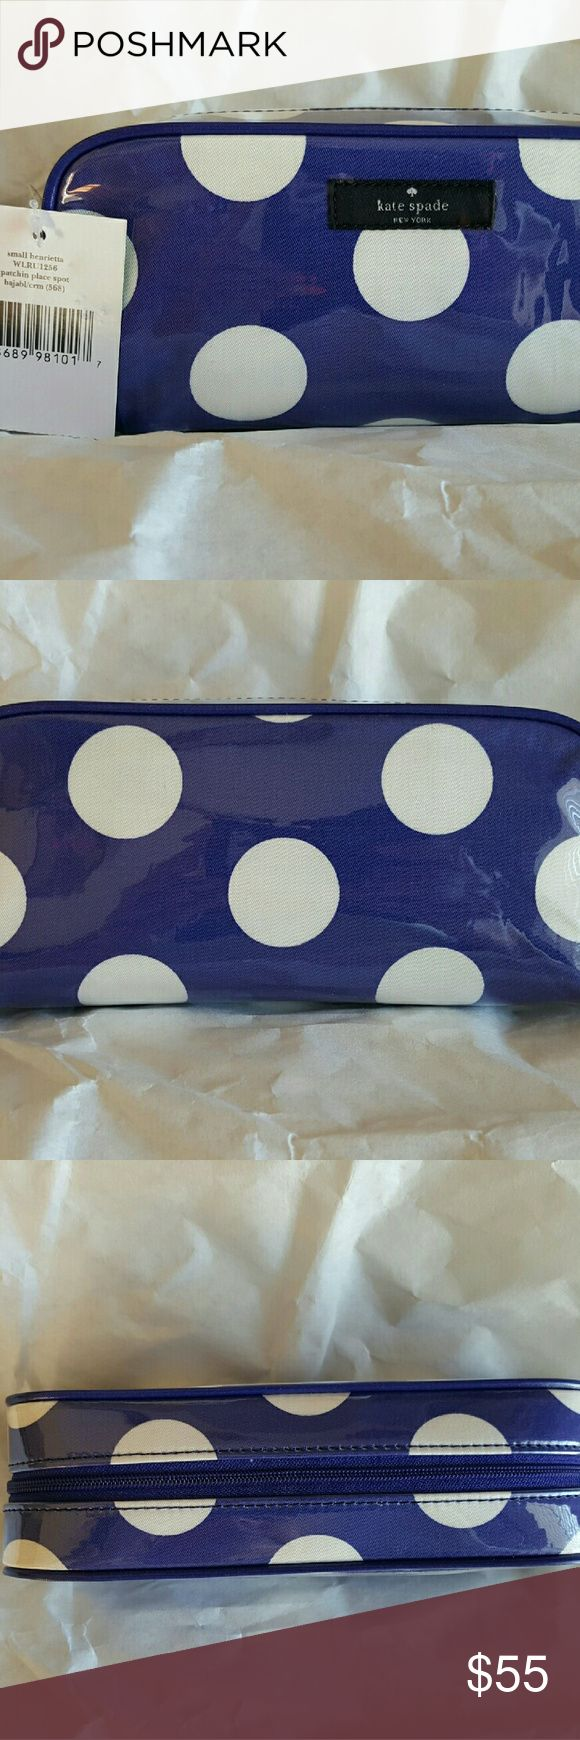 KATE SPADE Henrieta Patchin Place Cosmetic Bag NWT KATE SPADE Small Henrietta Patchin Place Spot Cosmetic Bag - Blue with White Polka Dots (NWT) original price $60  This little coated faille cosmetic clutch is sure to bring a smile to your face with its cheery polka dot print.  MATERIAL - laminated cotton twill with cotton twill trim - 14-karat light gold plated hardware  - custom woven durable nylon   FEATURES & DETAILS  - zip around cosmetic bag  - blue with white polka dots - ivory nylon…